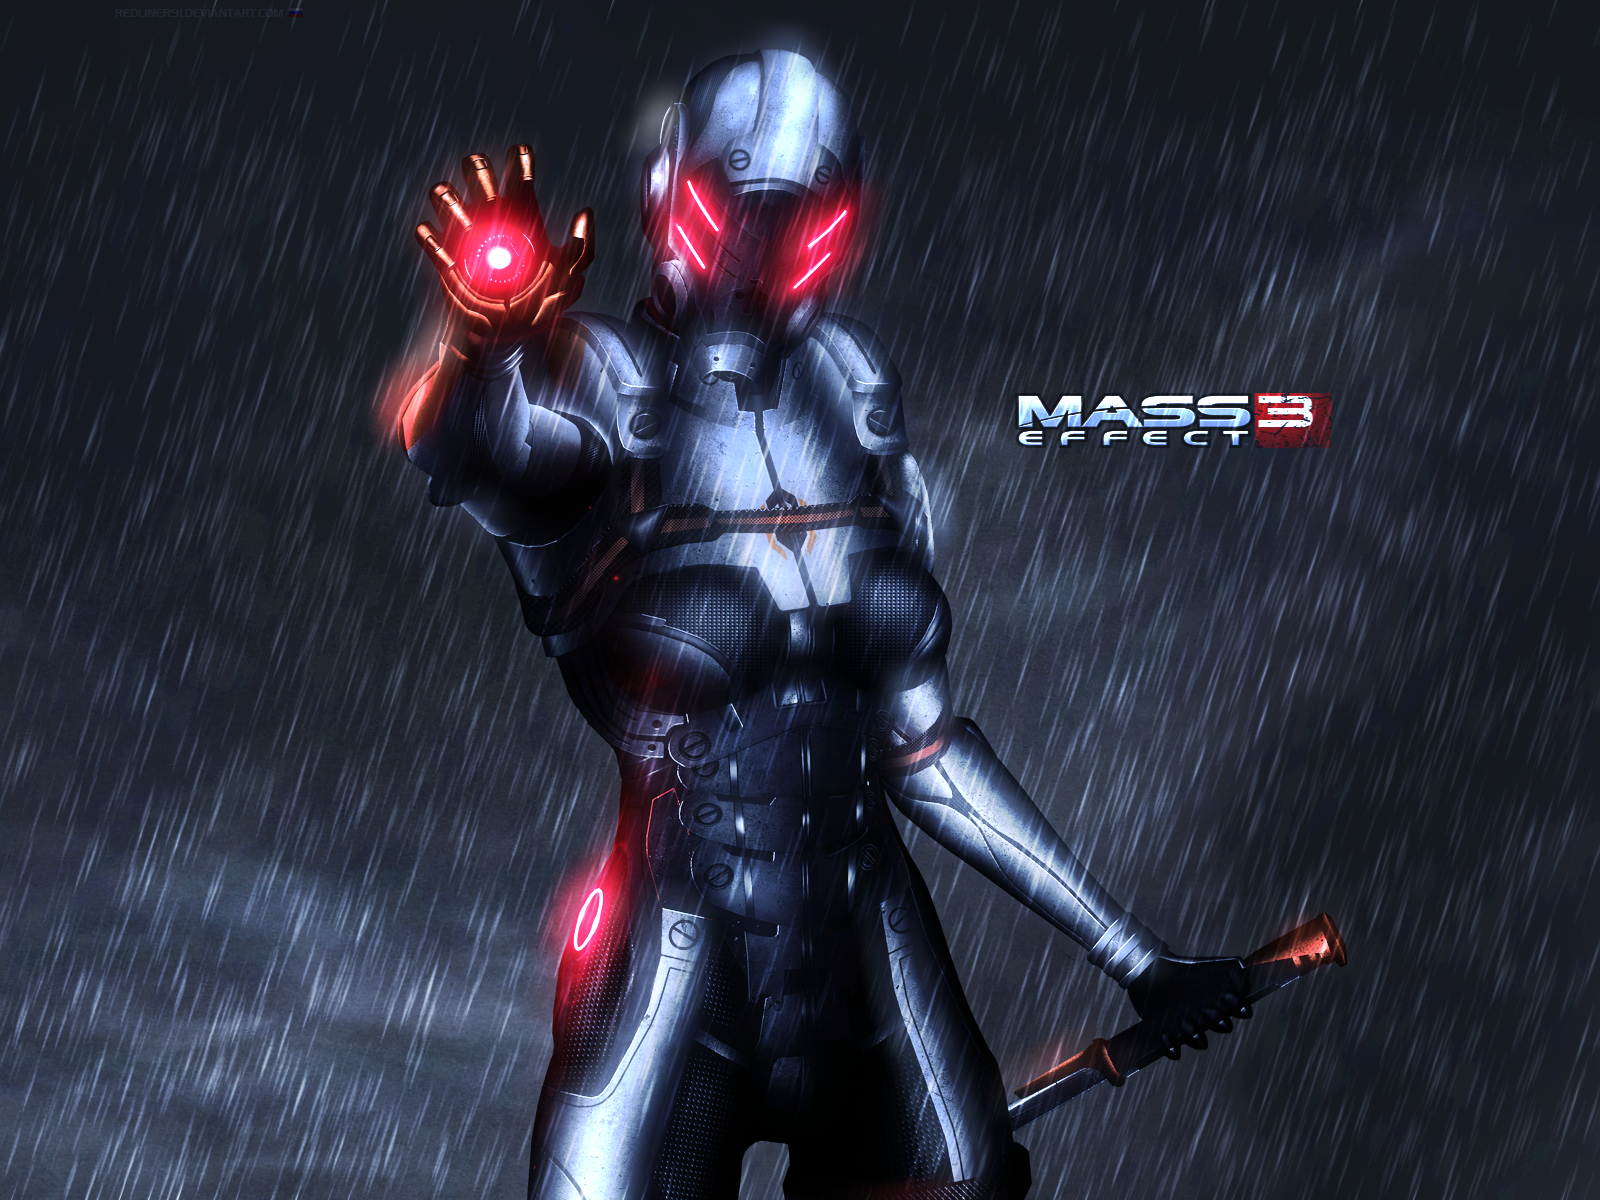 mass_effect_3_phantom_rain_edition_vol_1_by_redliner91-d58j6bb.png